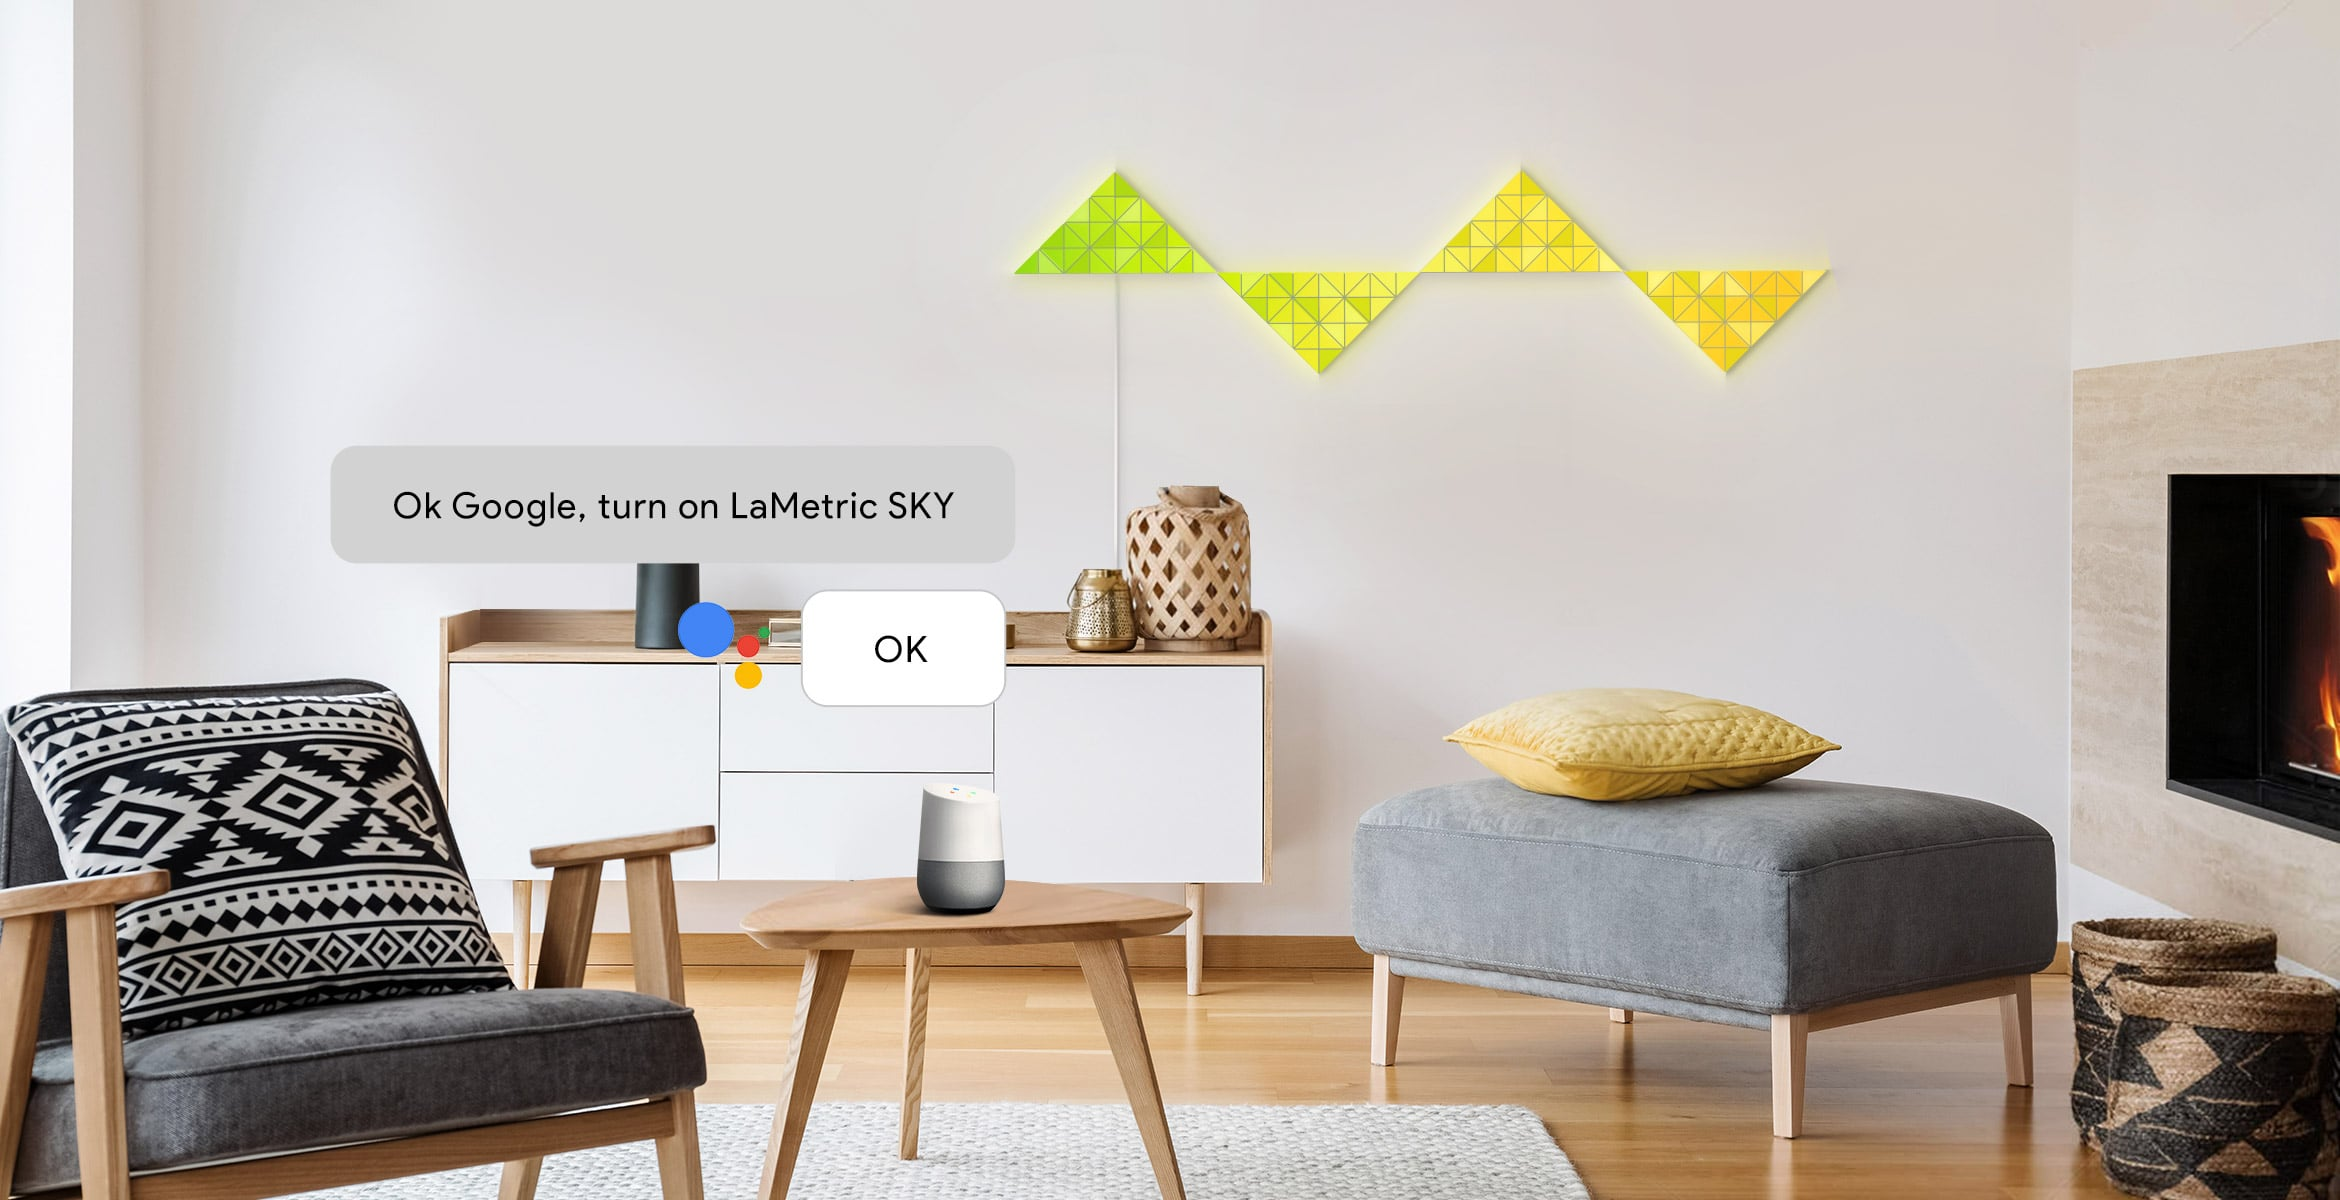 Voice control of LaMetric SKY smart light surfaces, assembled into the reflection shape, via Google Assistant